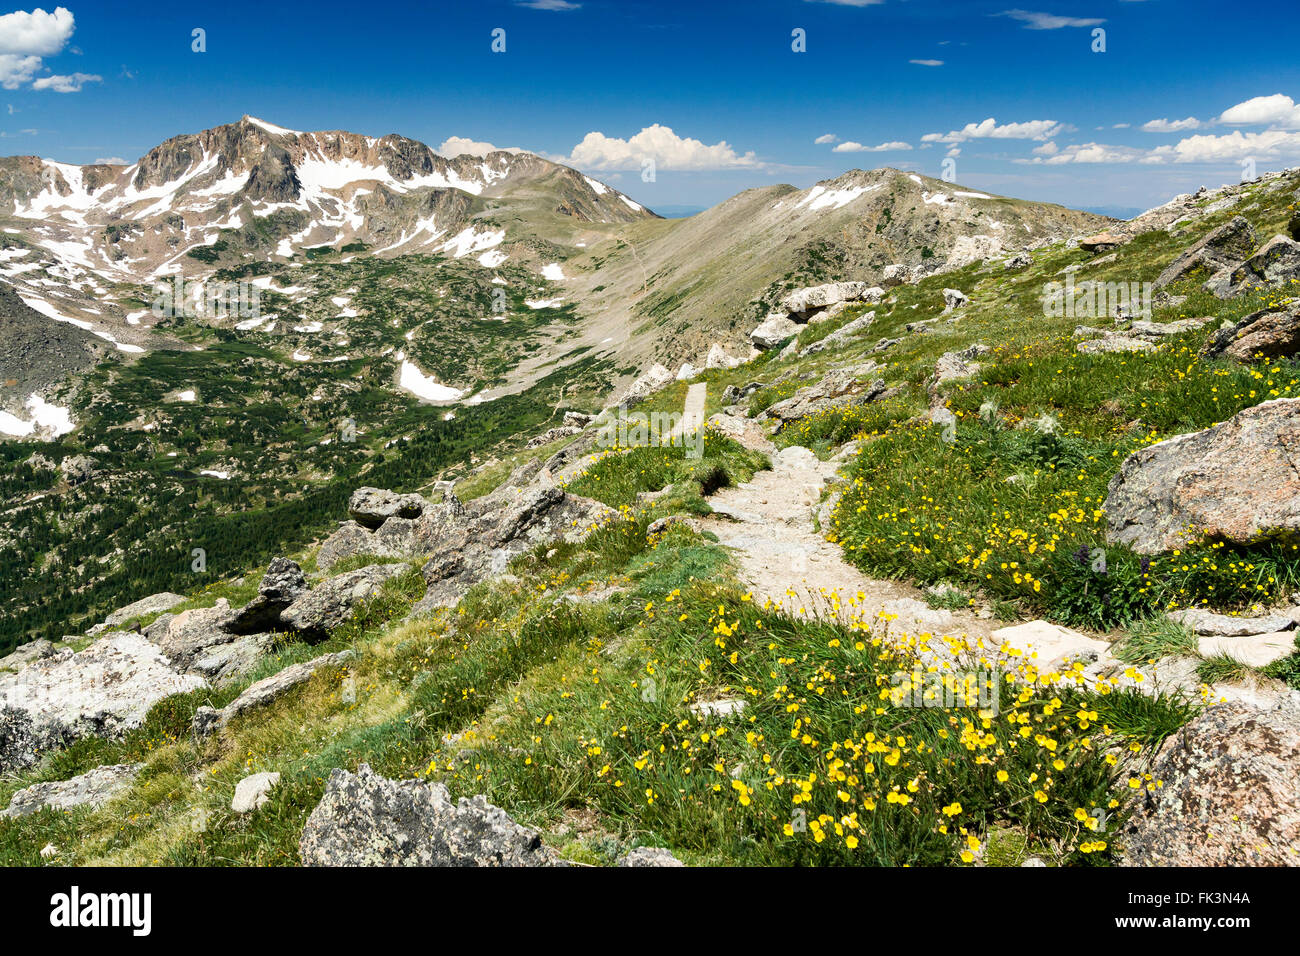 Arapaho Glacier Trail Crosses the Continental Divide High in the Colorado Rocky Mountains with Summer Wildflowers - Stock Image